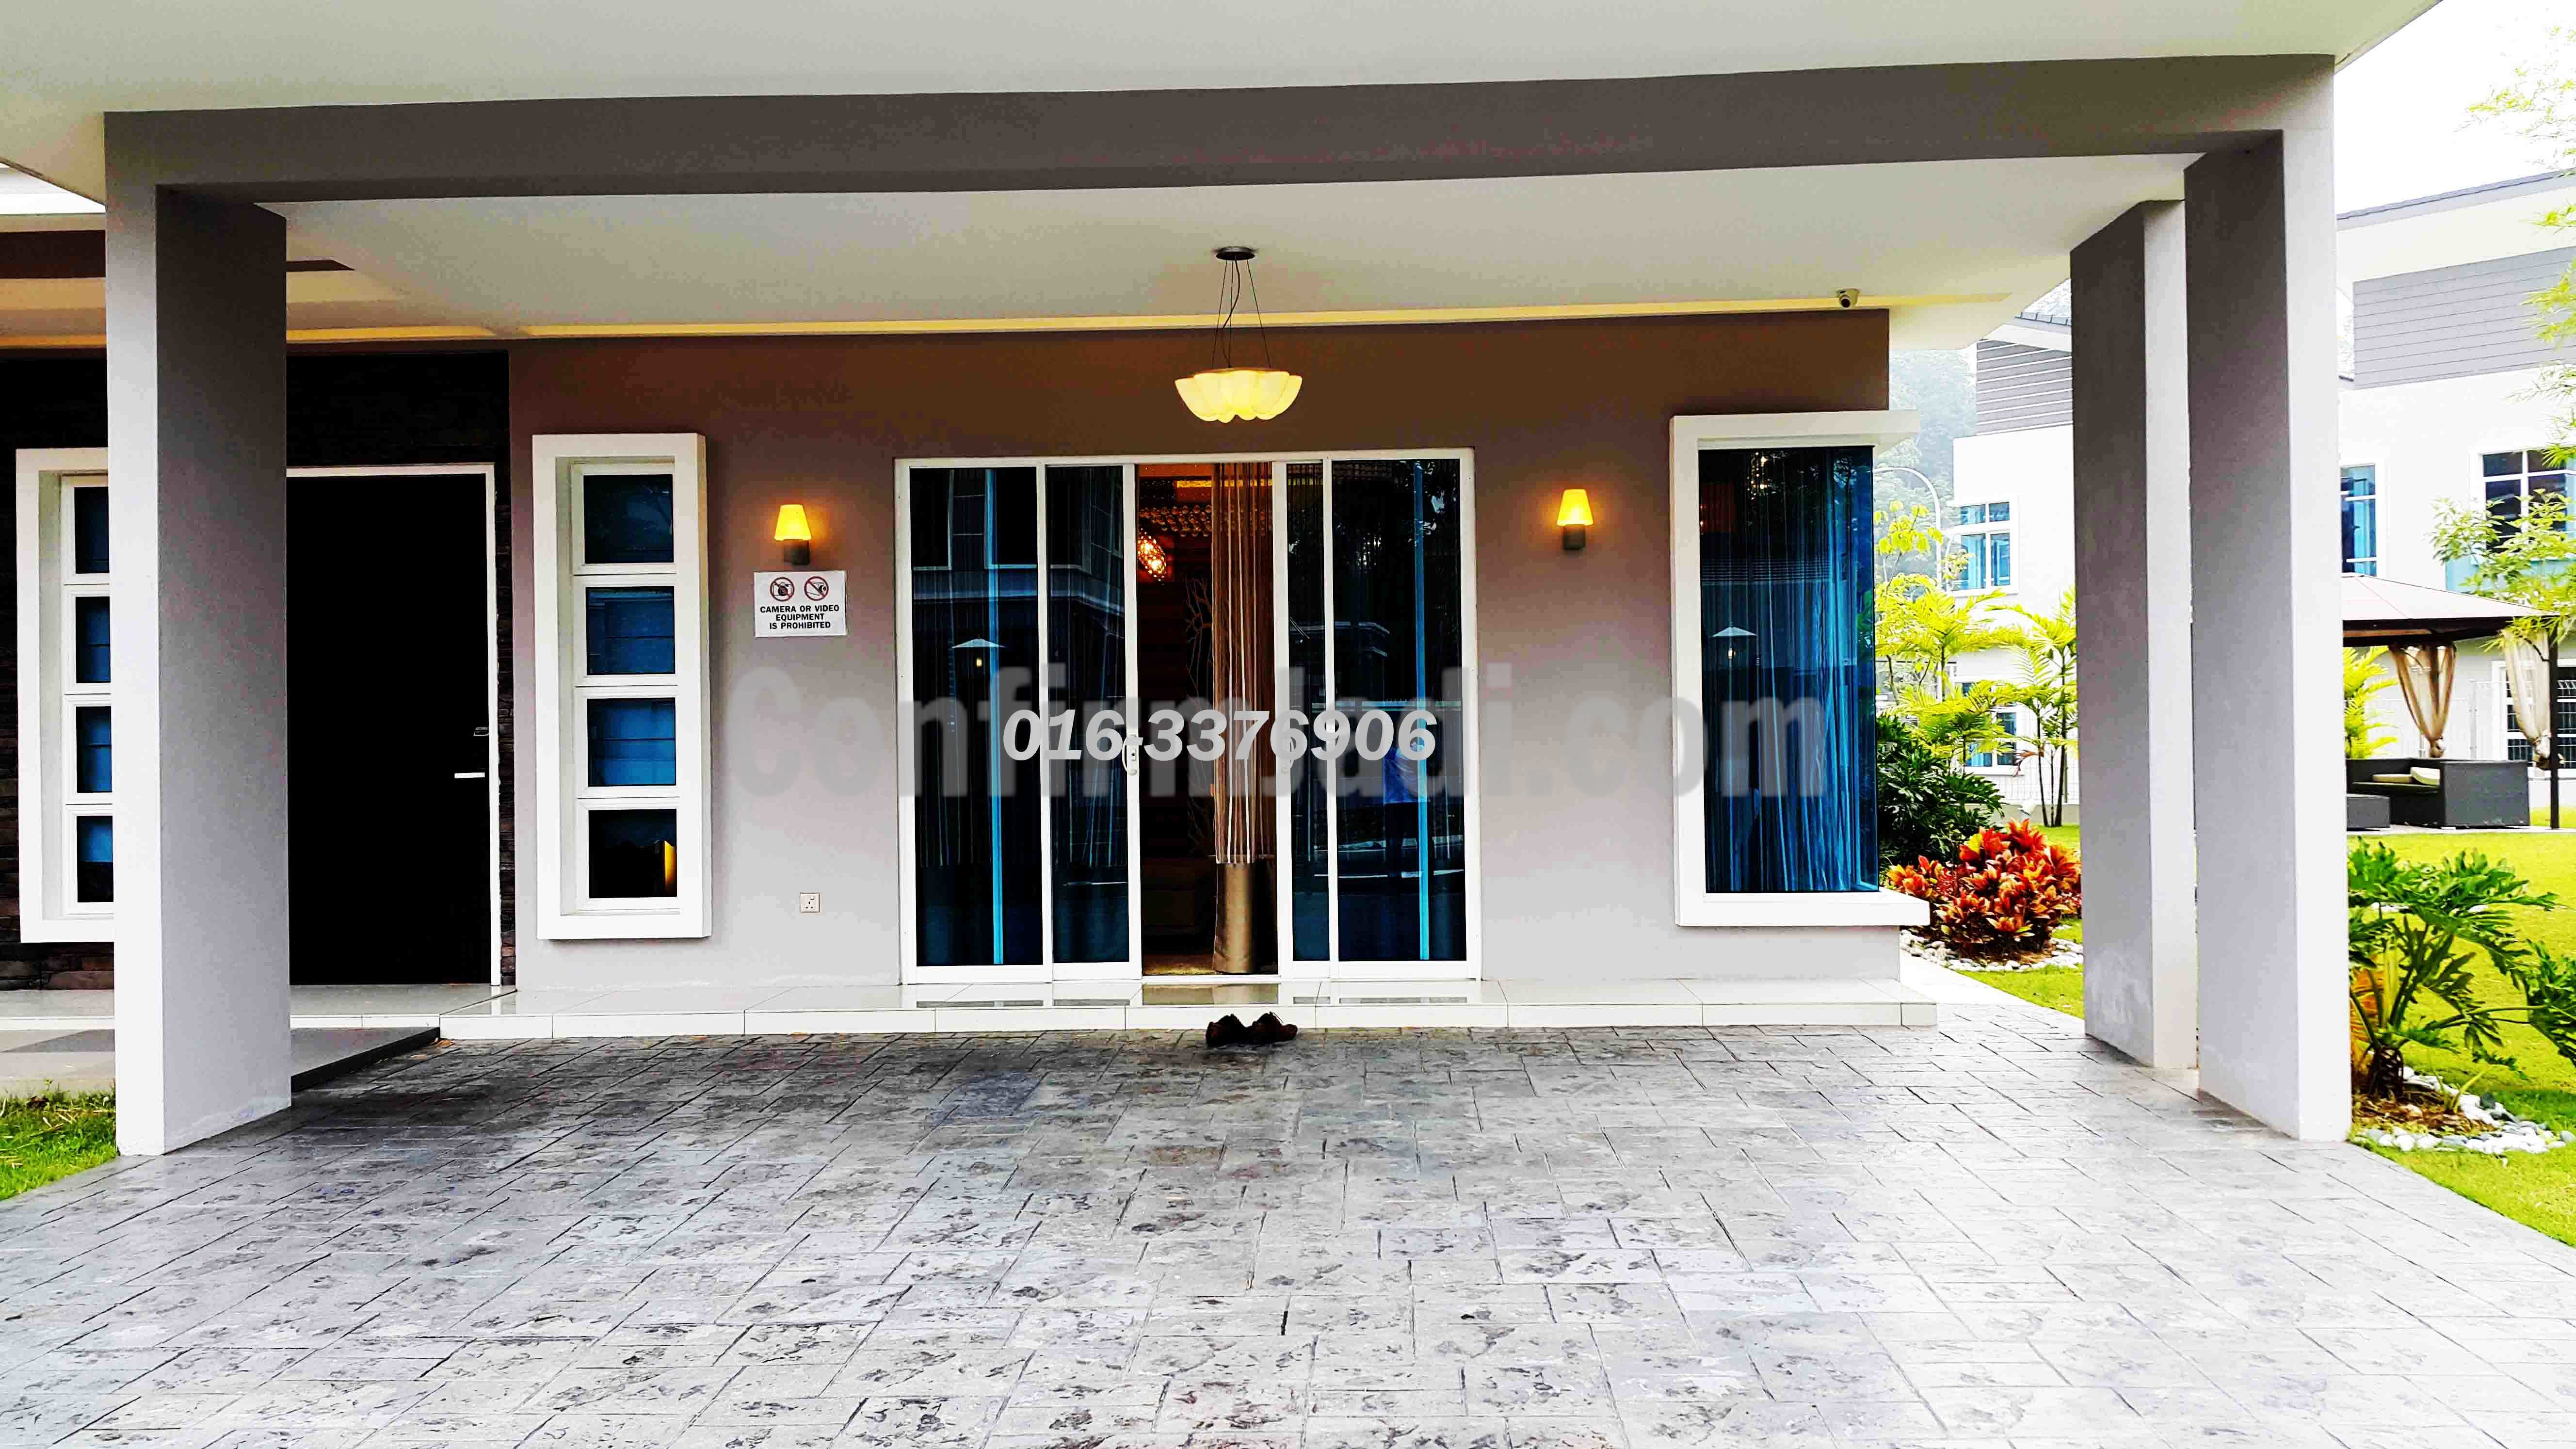 New 2 Storey Bungalow House For Sale in Seremban ConfirmJadicom